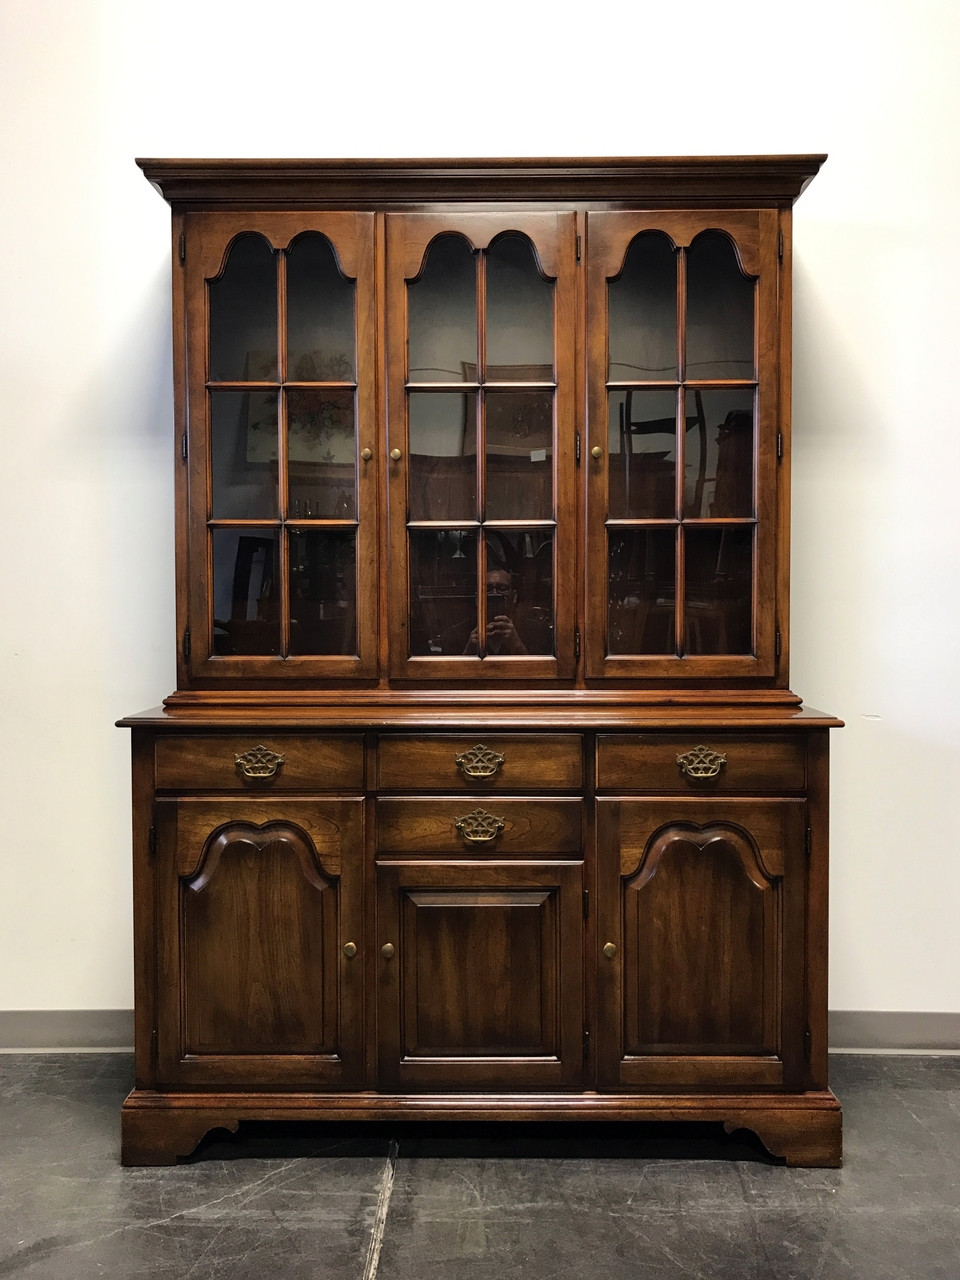 Sold Out Statton Oxford Antique Cherry China Cabinet Hutch